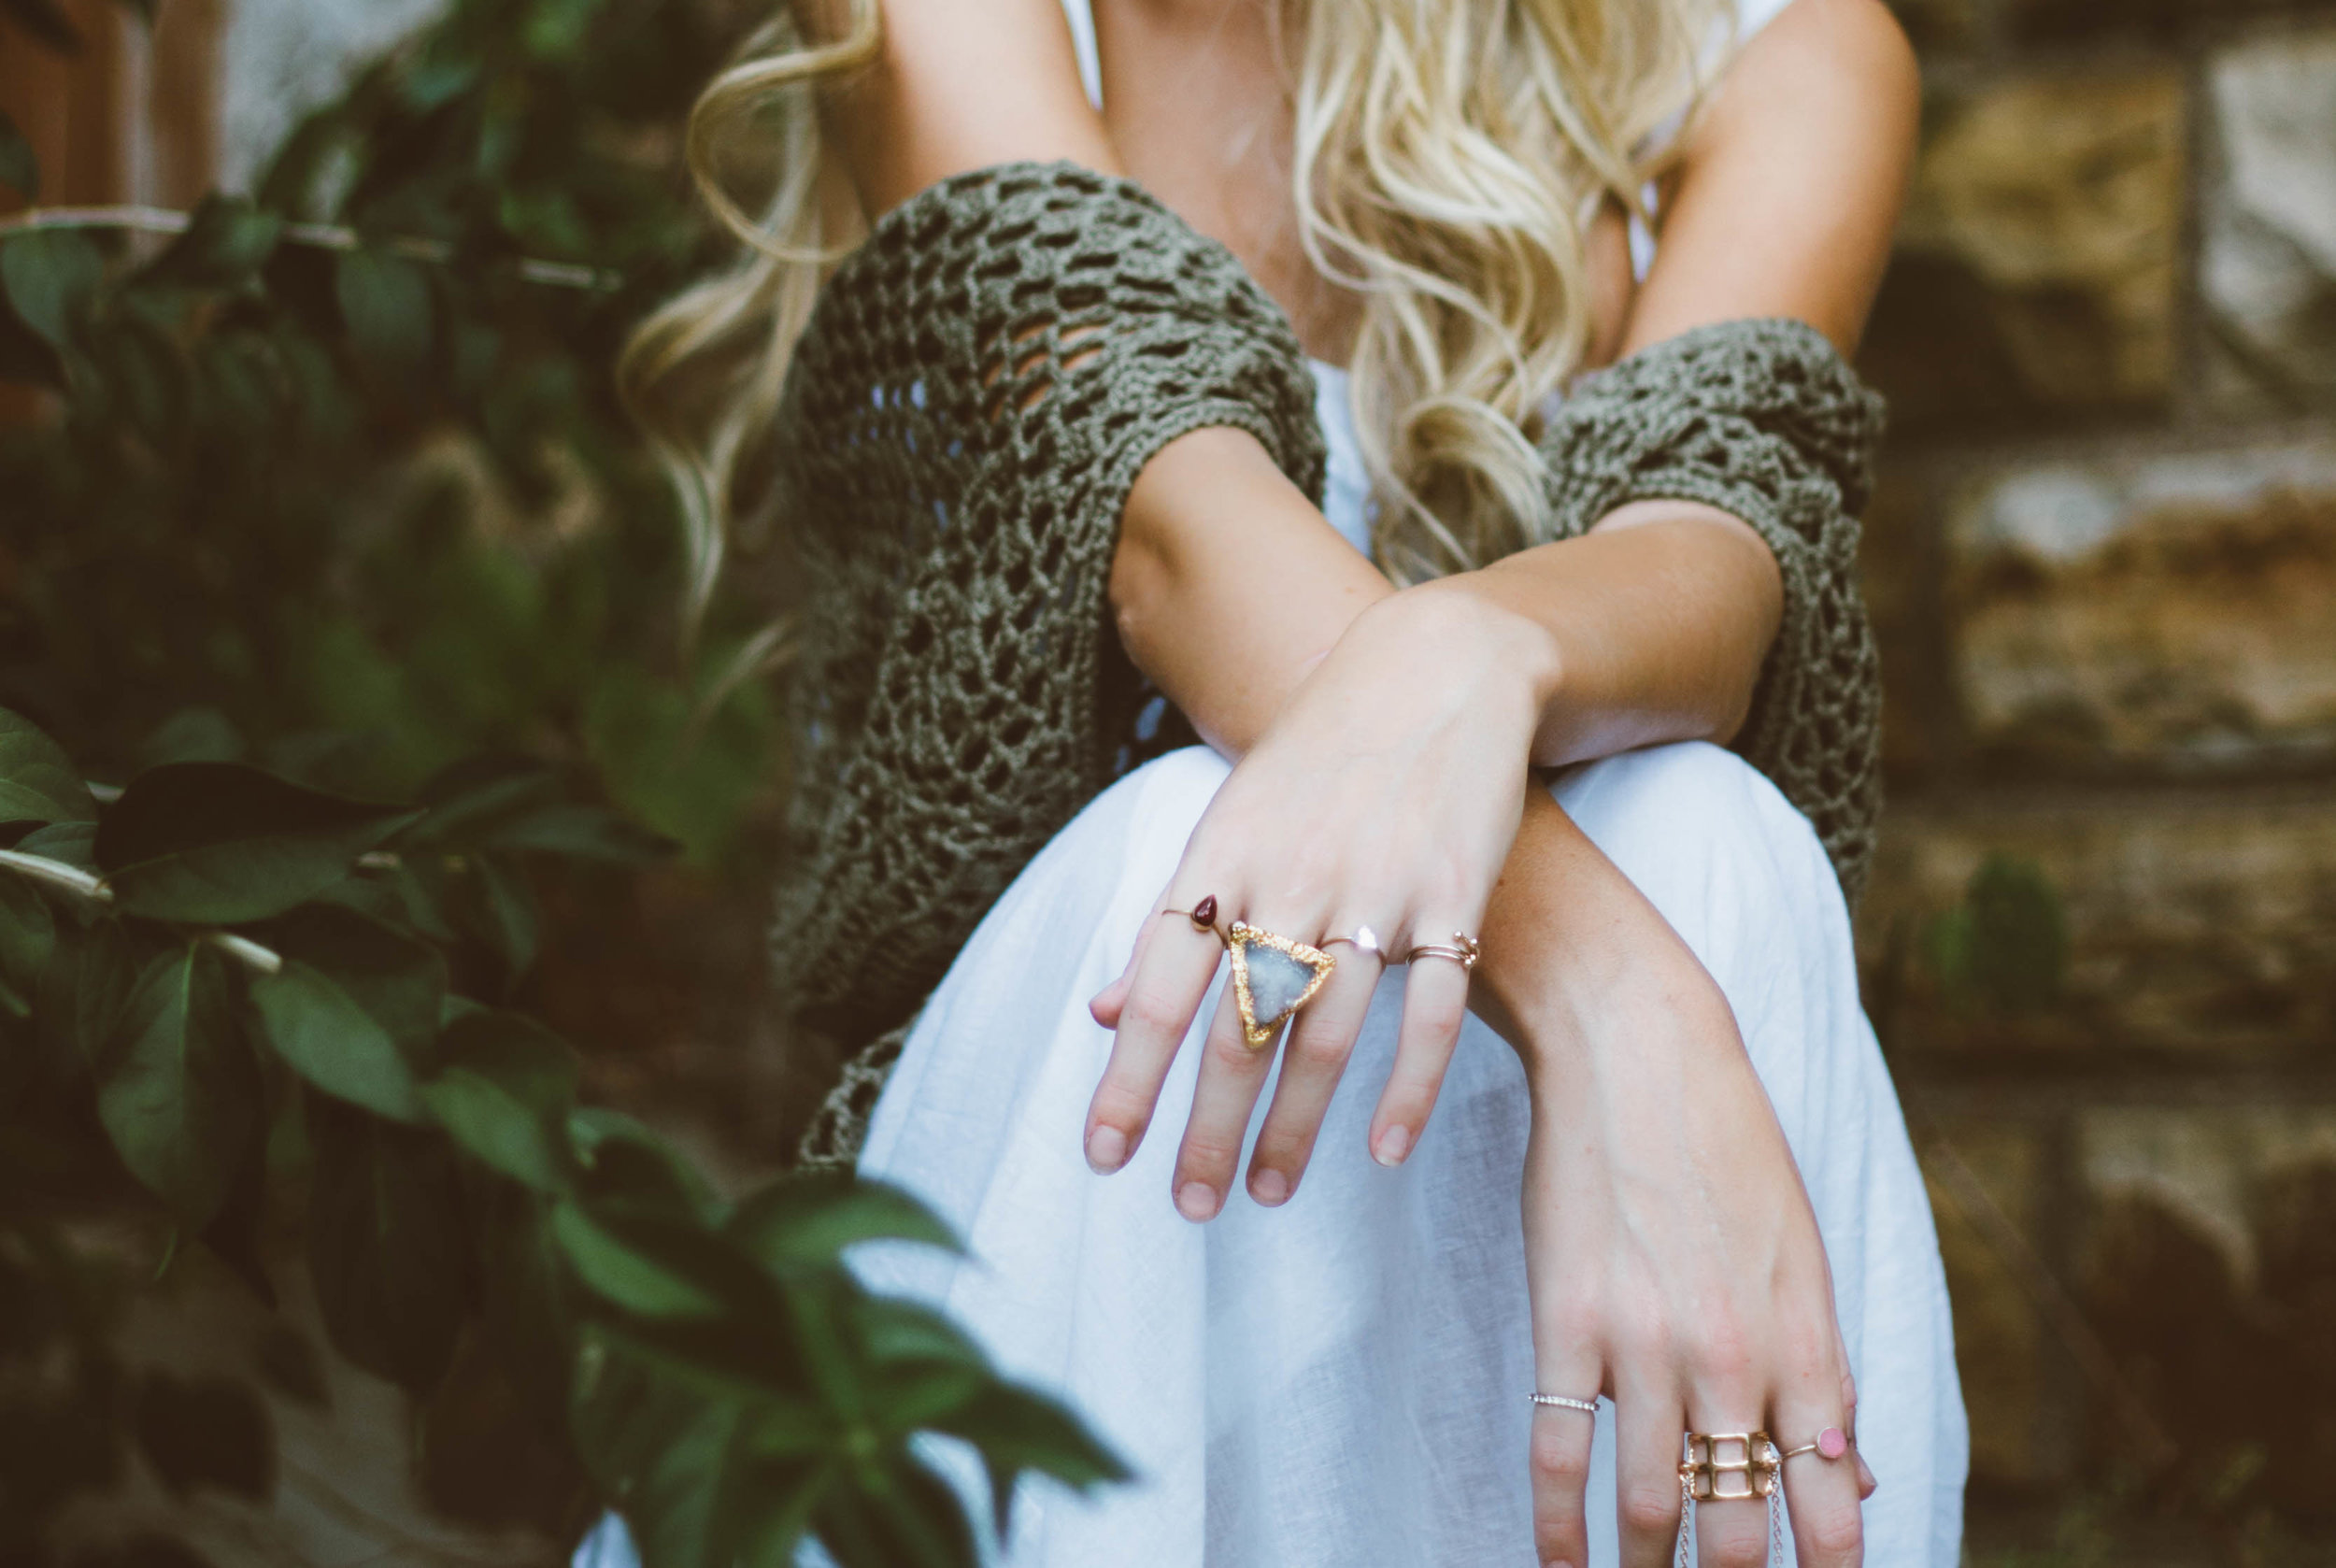 Unique Like You. - All Of Our Jewelry Is Handmade,And Shipped With Love,From Santa Monica, California.